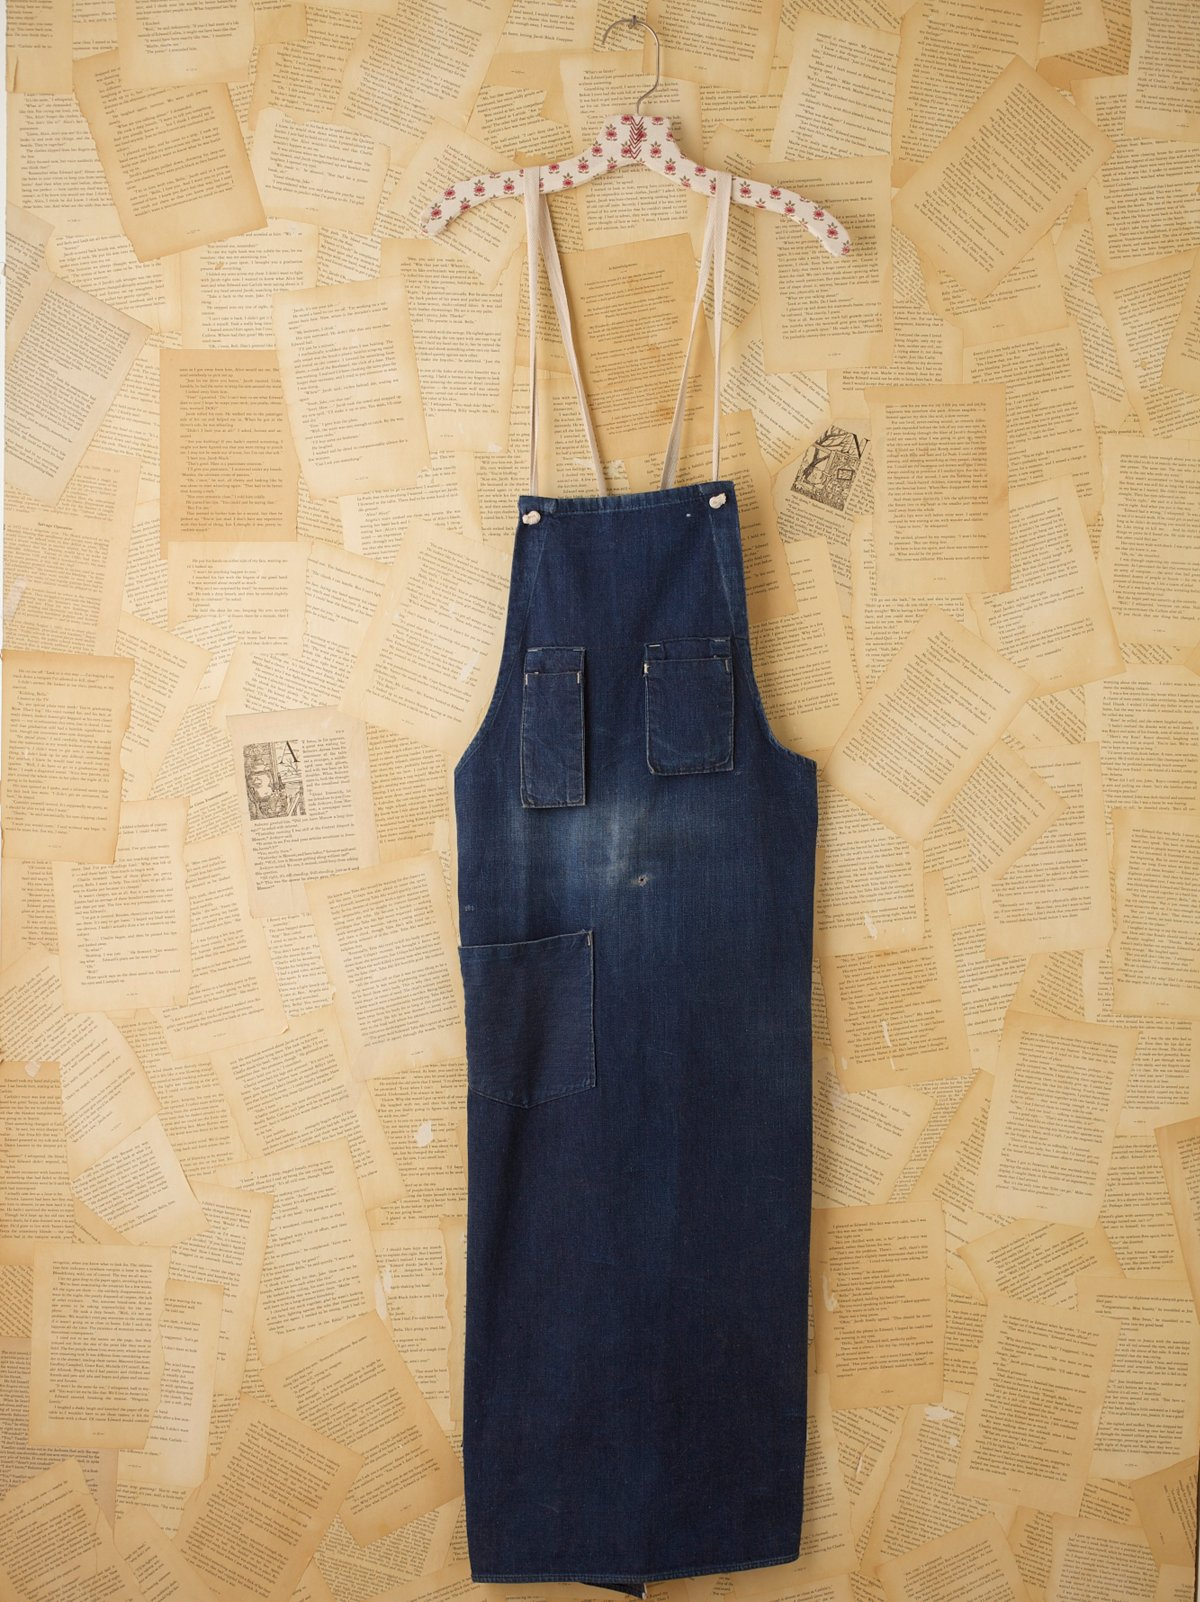 Vintage Denim Work Apron